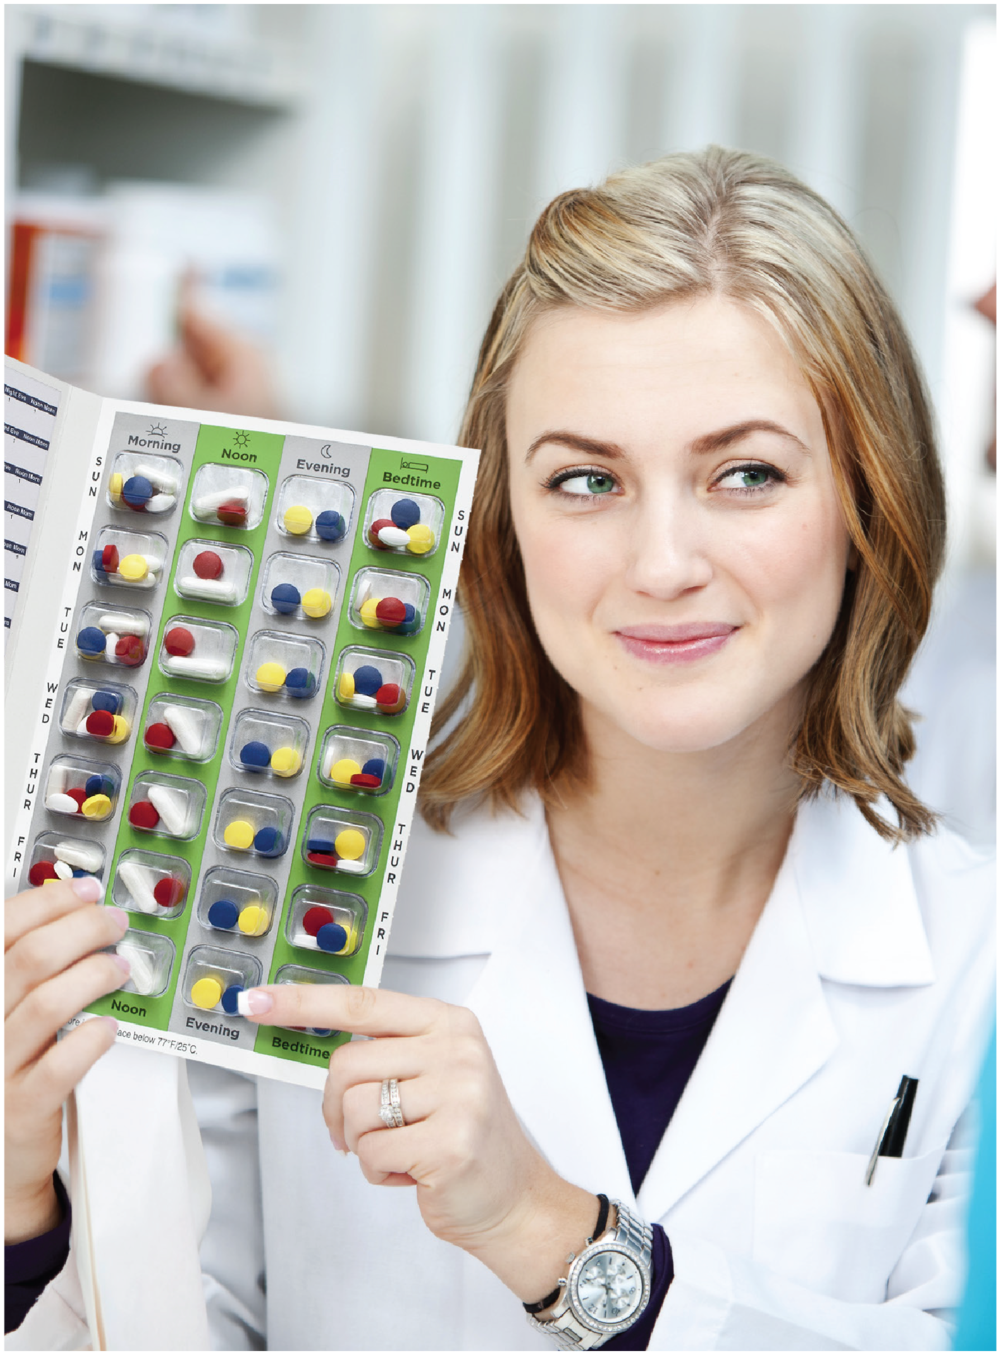 MedBook with Pharmacist Image.png